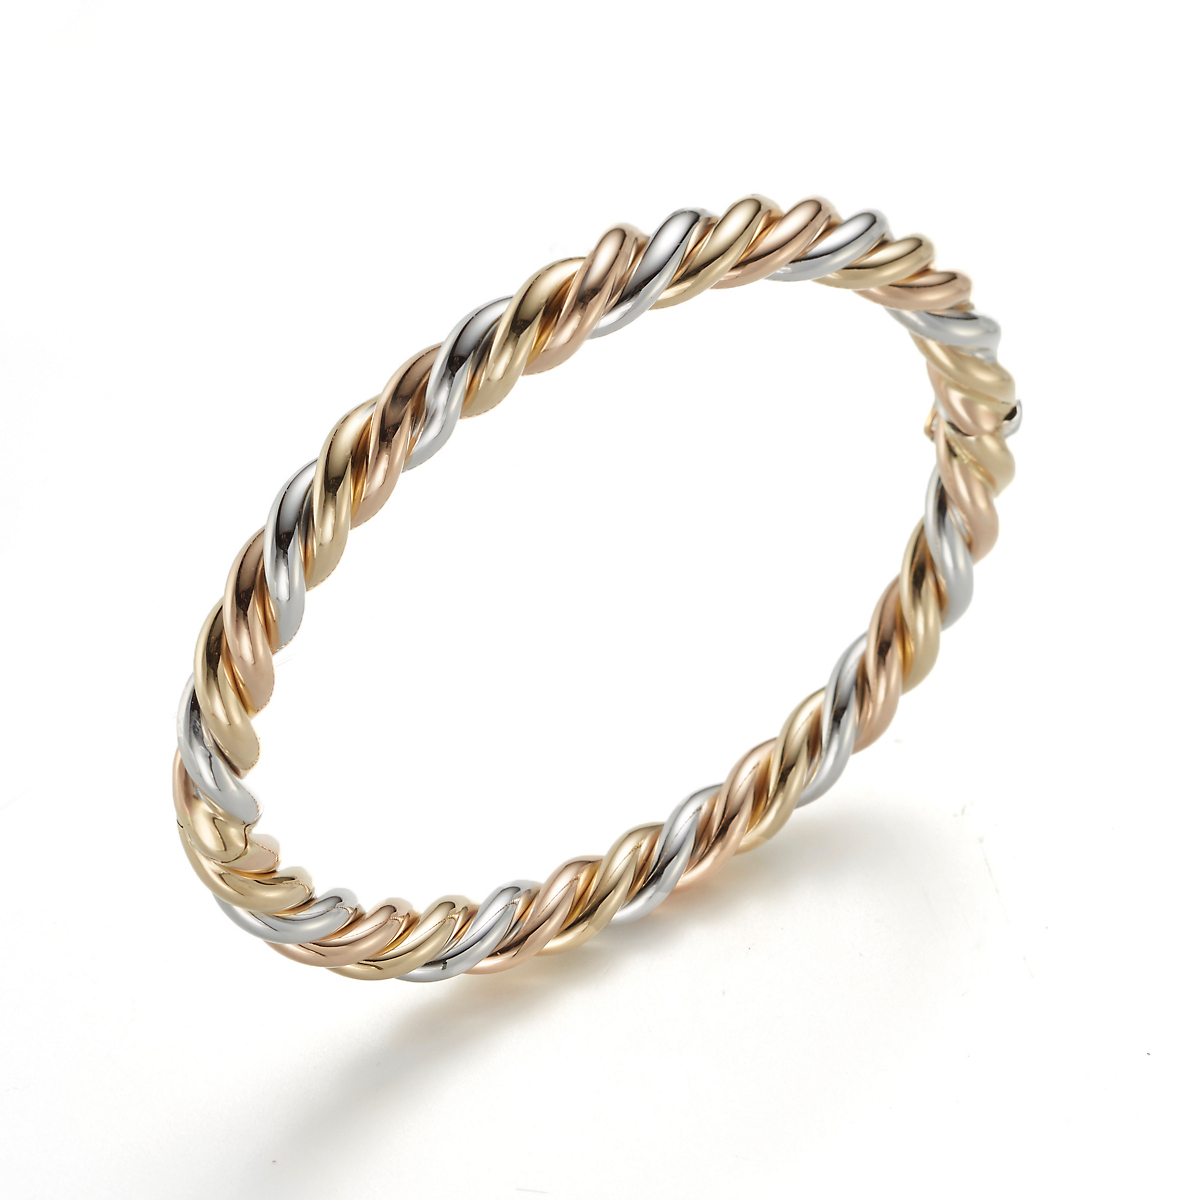 Tricolor Gold Twist Bangle